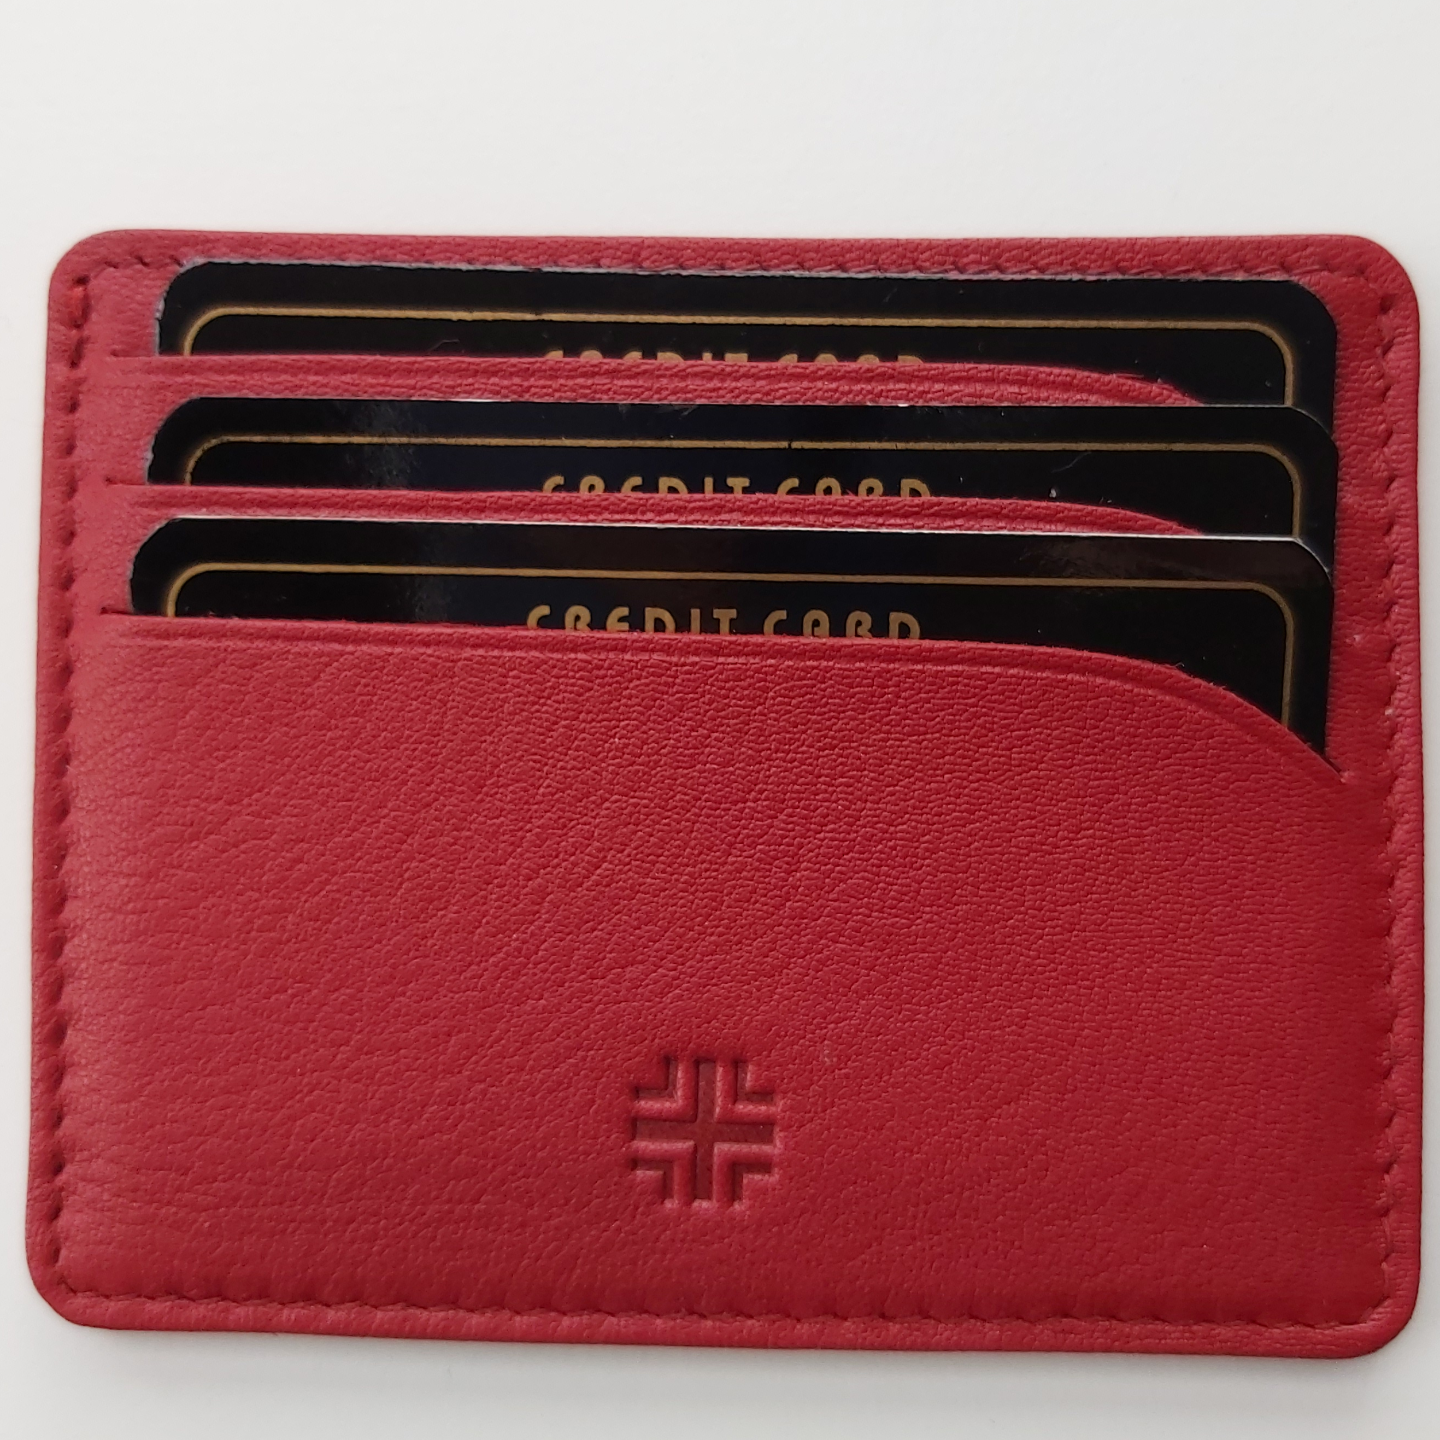 Card Holder in Leather Red